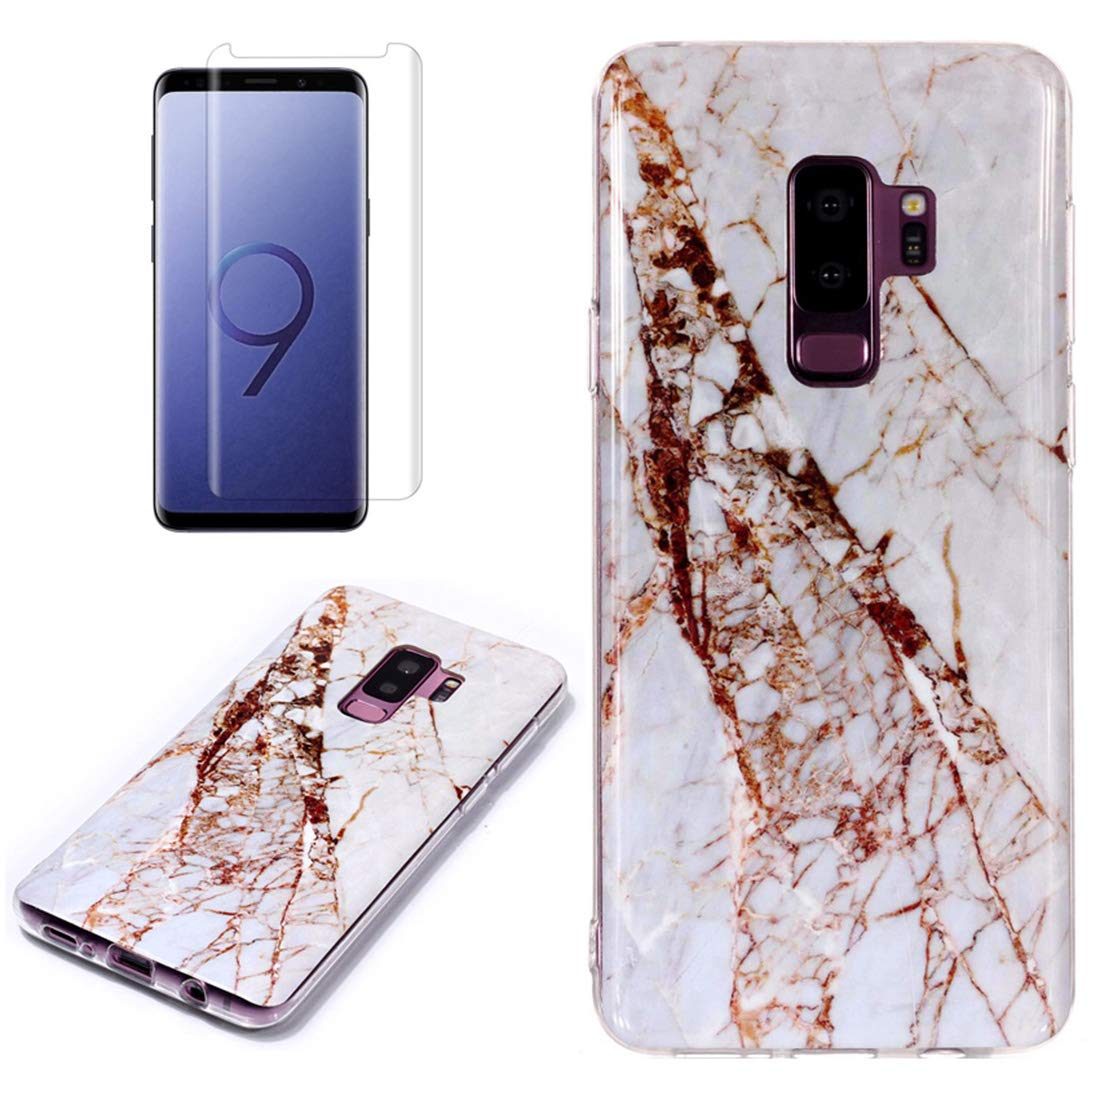 for Samsung Galaxy S9 Plus Marble Case with Screen Protector,Unique Pattern Design Skin Ultra Thin Slim Fit Soft Gel Silicone Case,QFFUN Shockproof Anti-Scratch Protective Back Cover - White by QFFUN (Image #1)